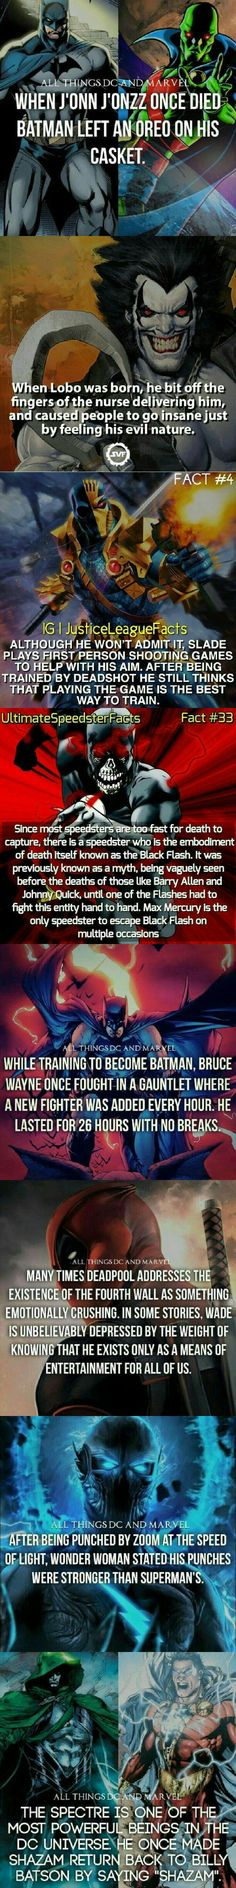 Marvel & Dc facts #8 - 9GAG